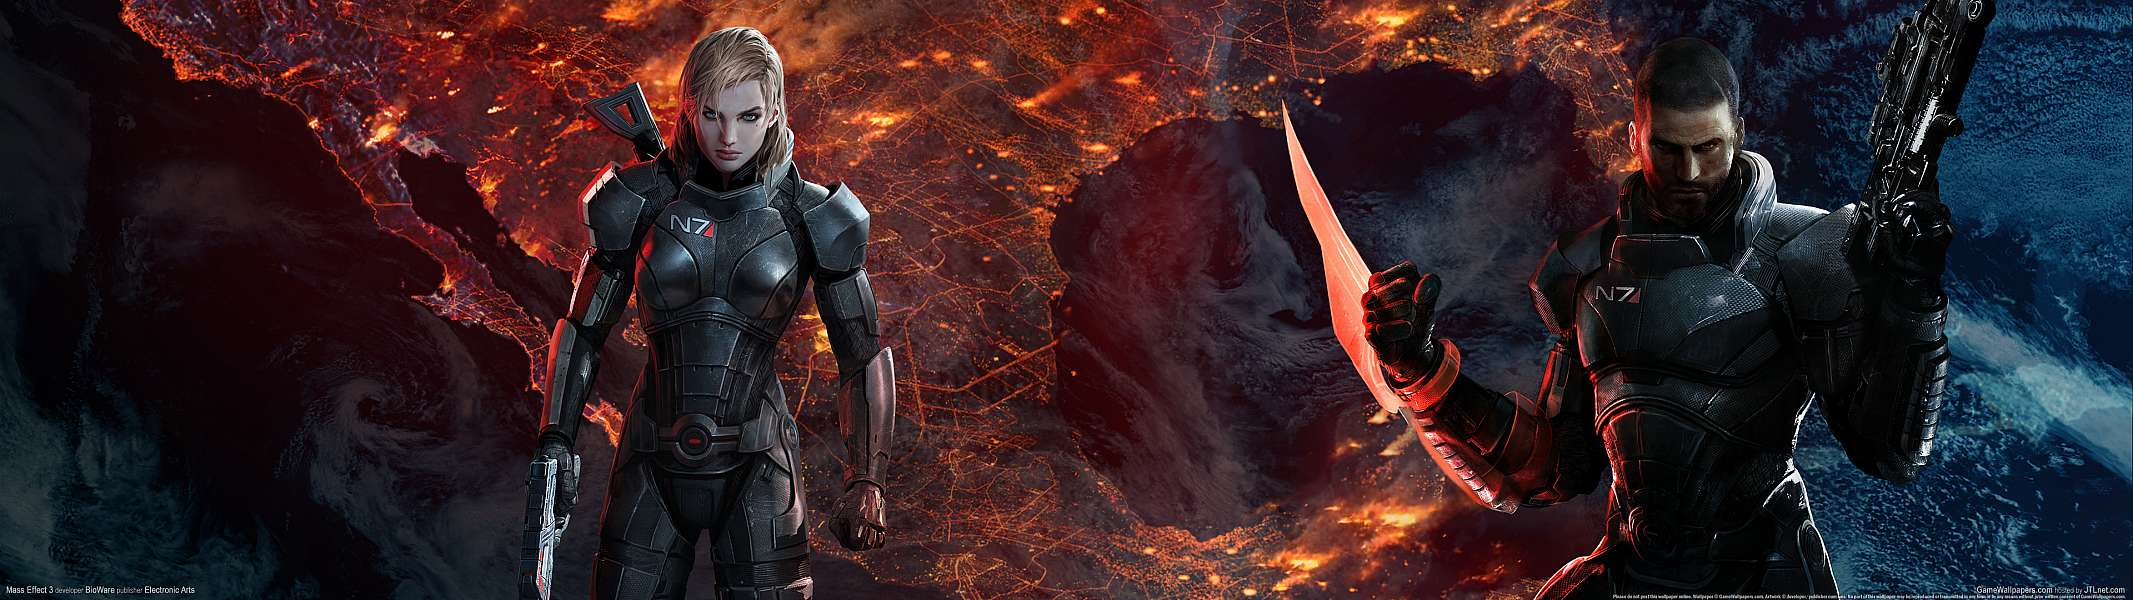 Mass Effect 3 dual screen wallpaper or background